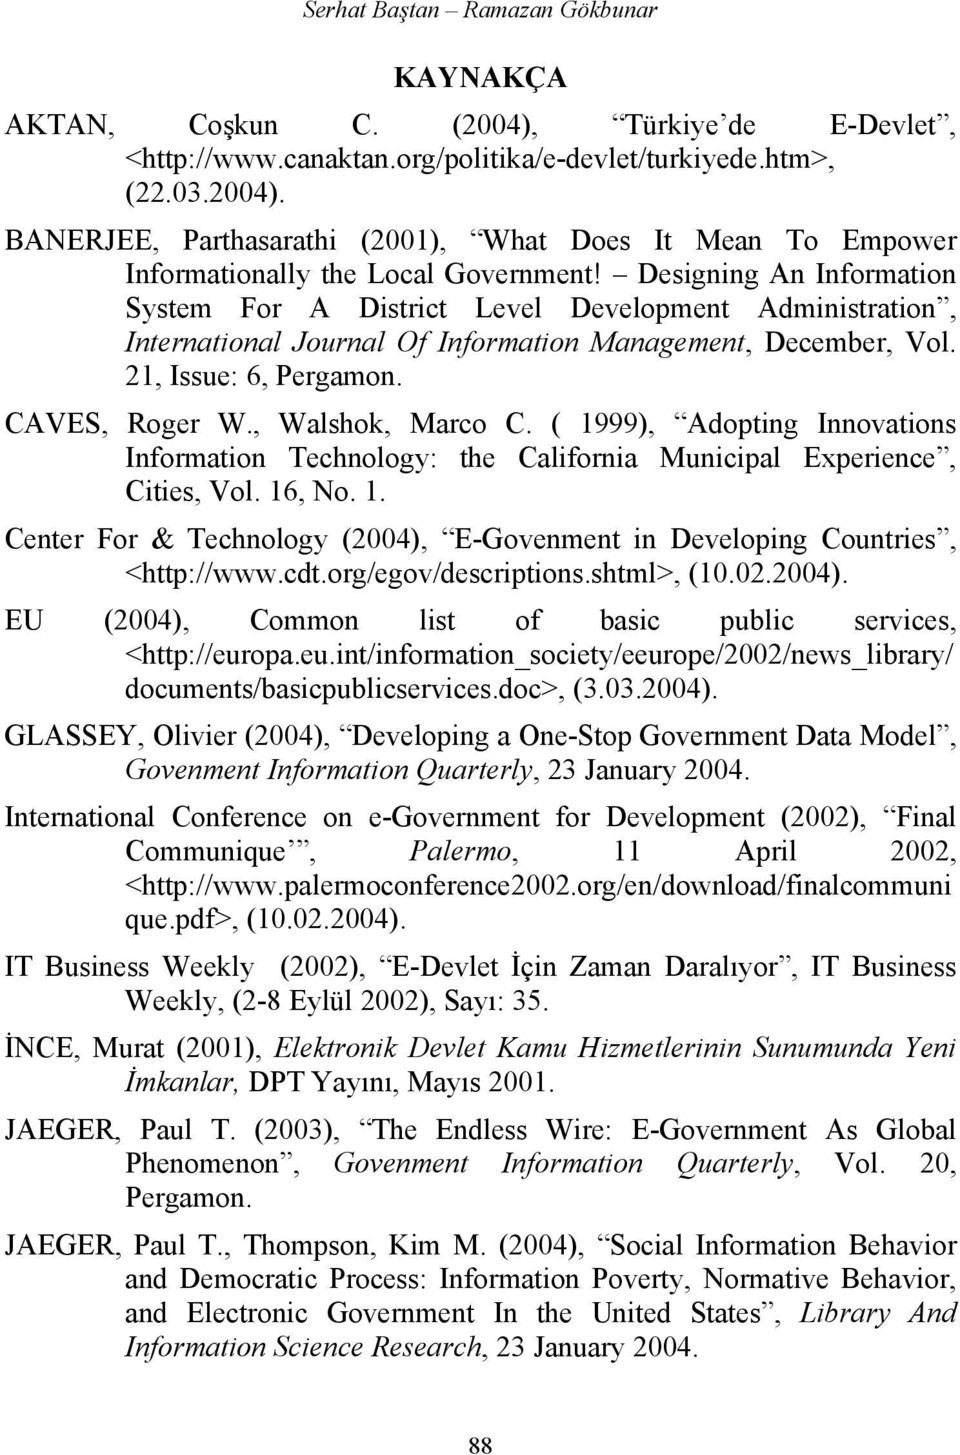 , Walshok, Marco C. ( 1999), Adopting Innovations Information Technology: the California Municipal Experience, Cities, Vol. 16, No. 1. Center For & Technology (2004), E-Govenment in Developing Countries, <http://www.